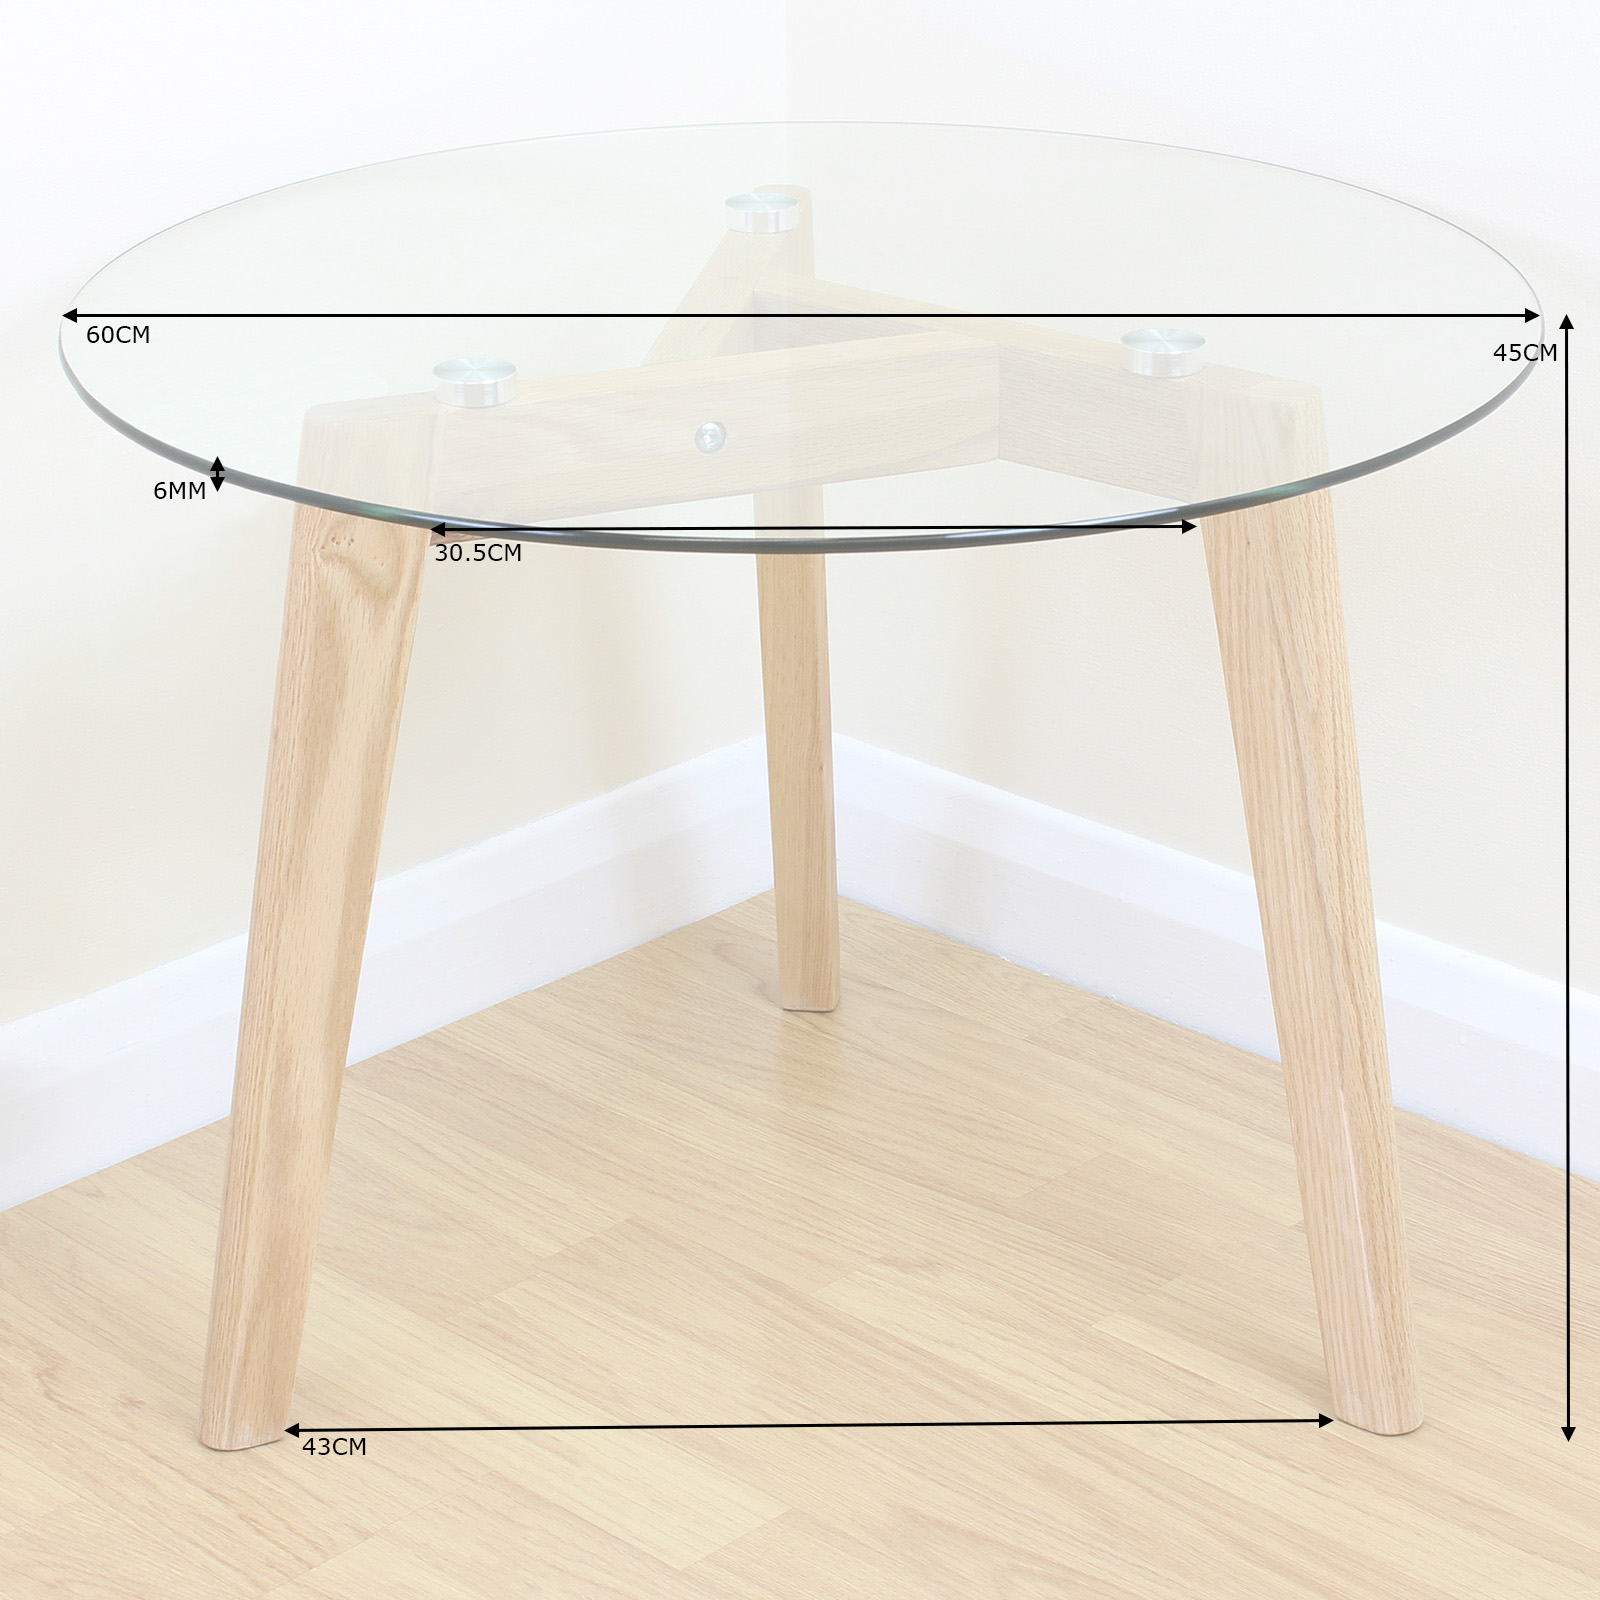 Ebay Oak And Glass Coffee Table: Solid Oak & Clear Glass Modern Round Side End Table Coffee